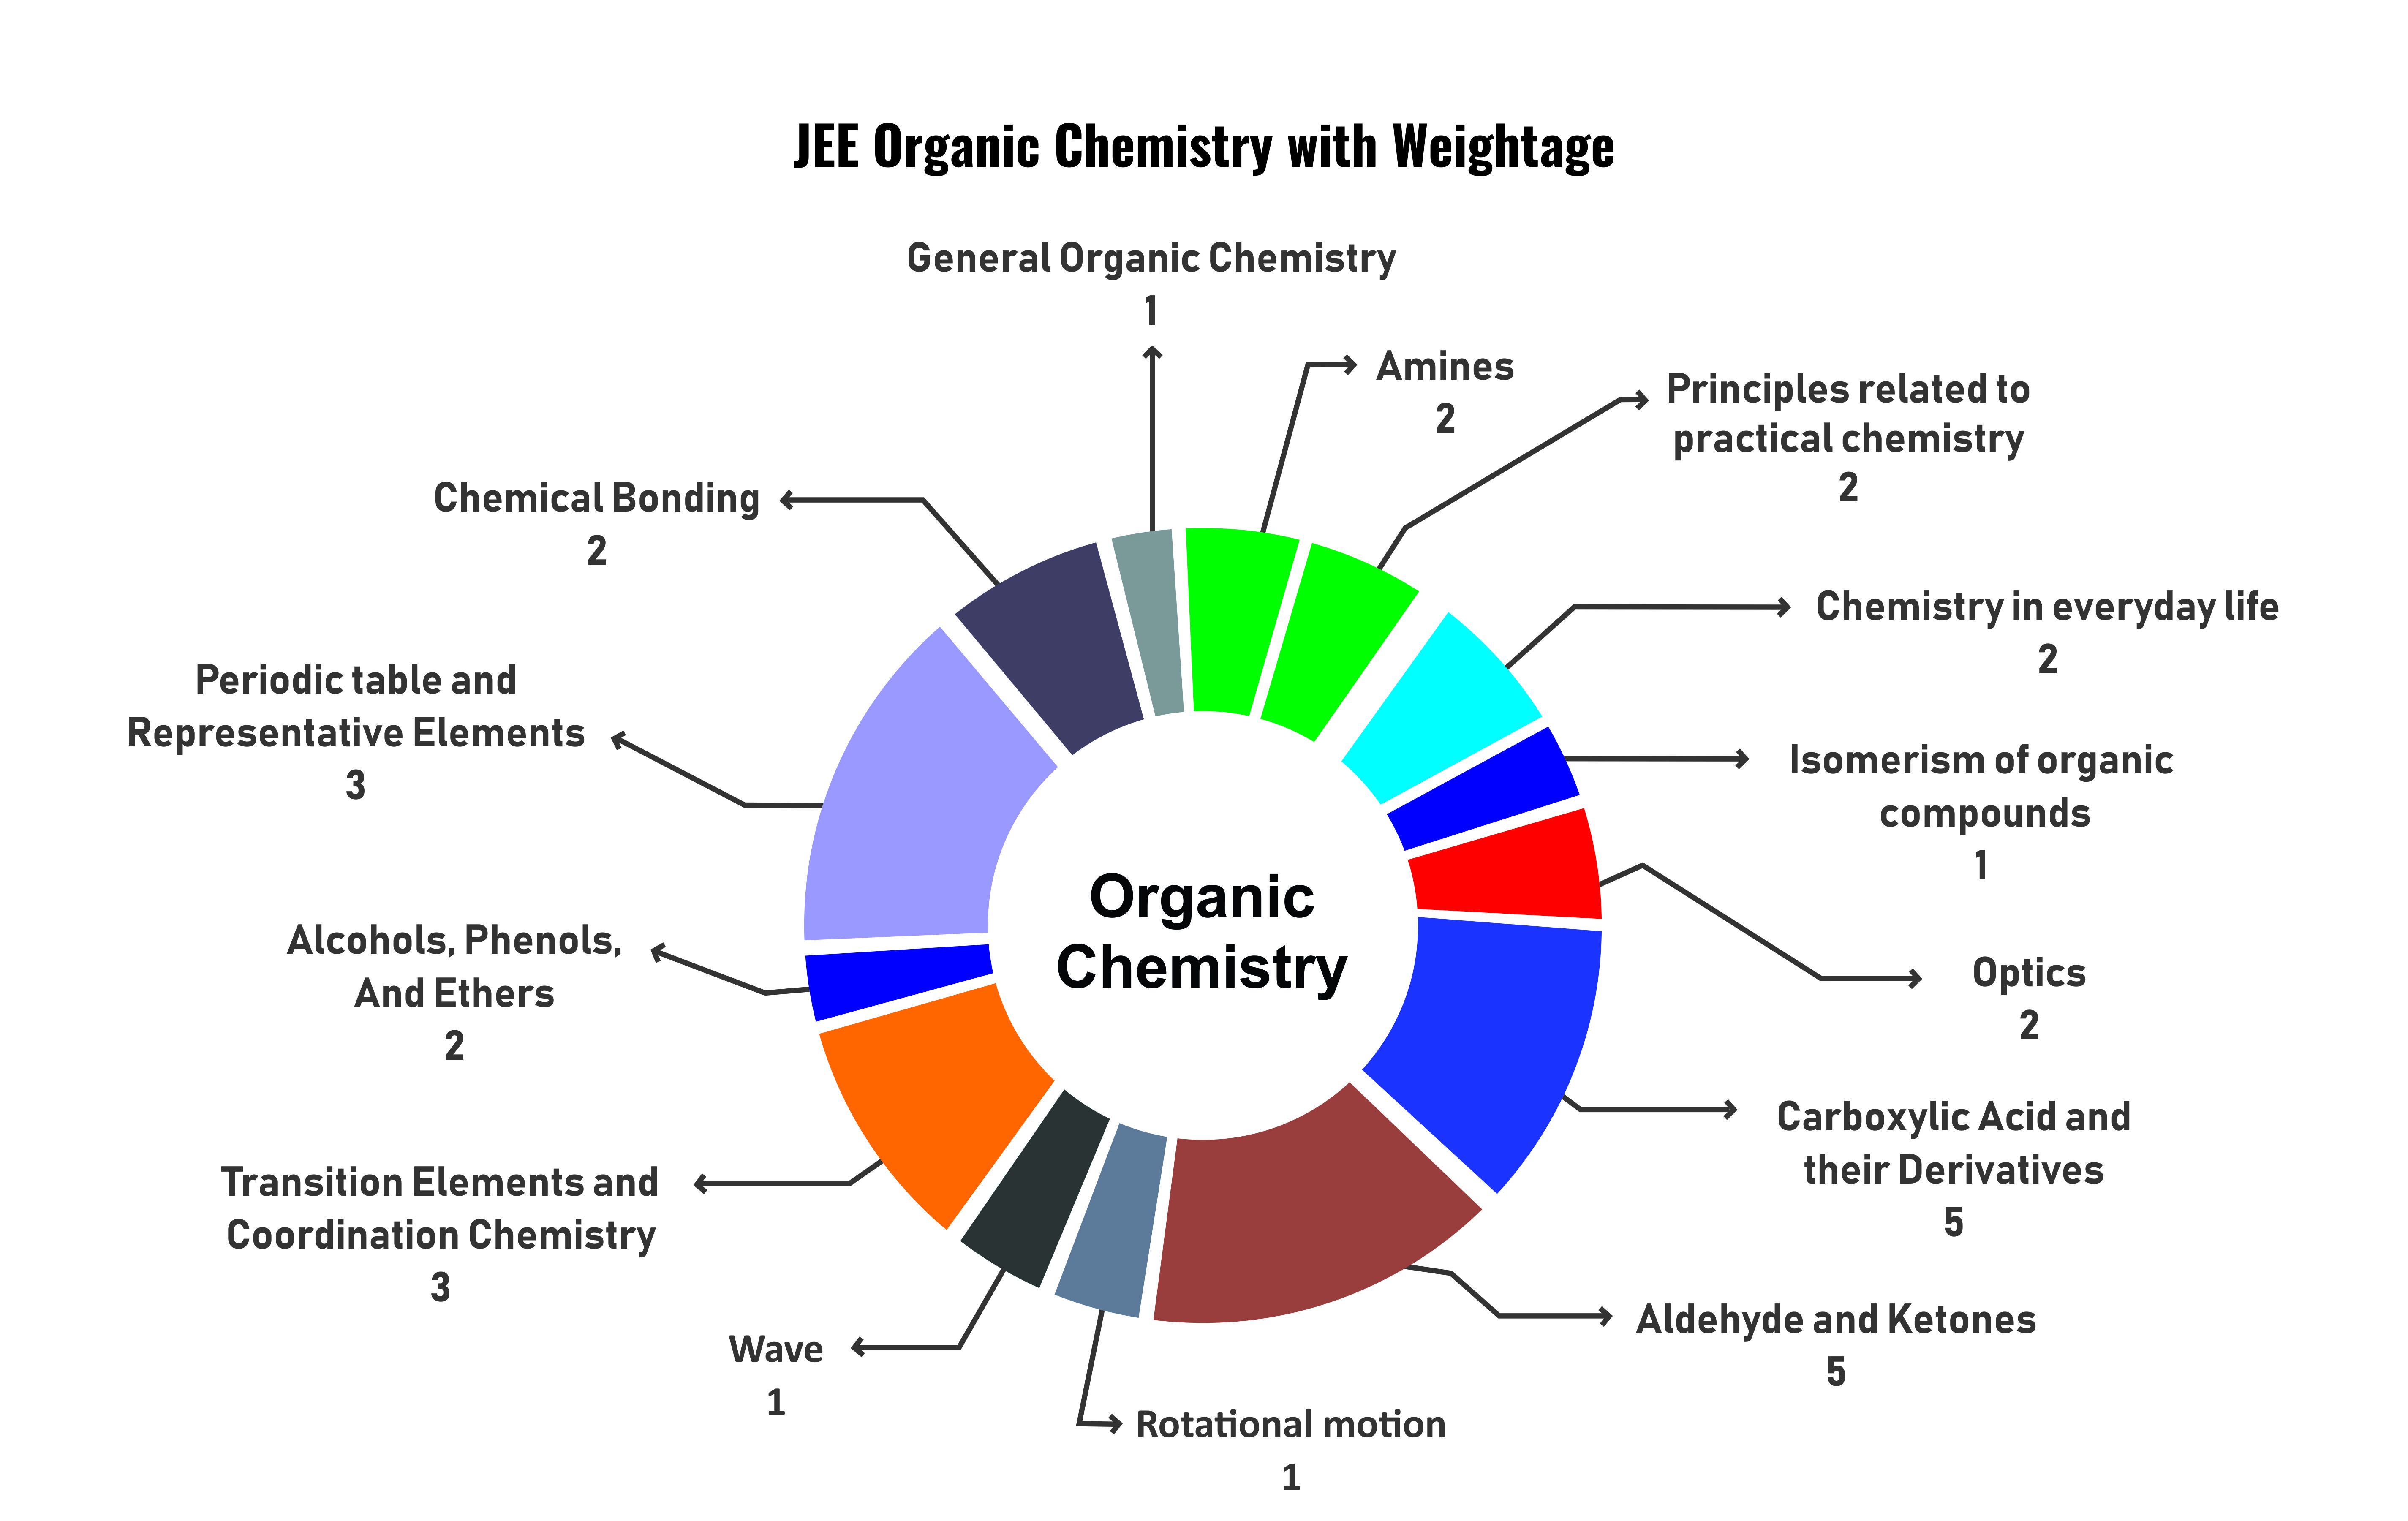 JEE Organic Chemistry with Weightage